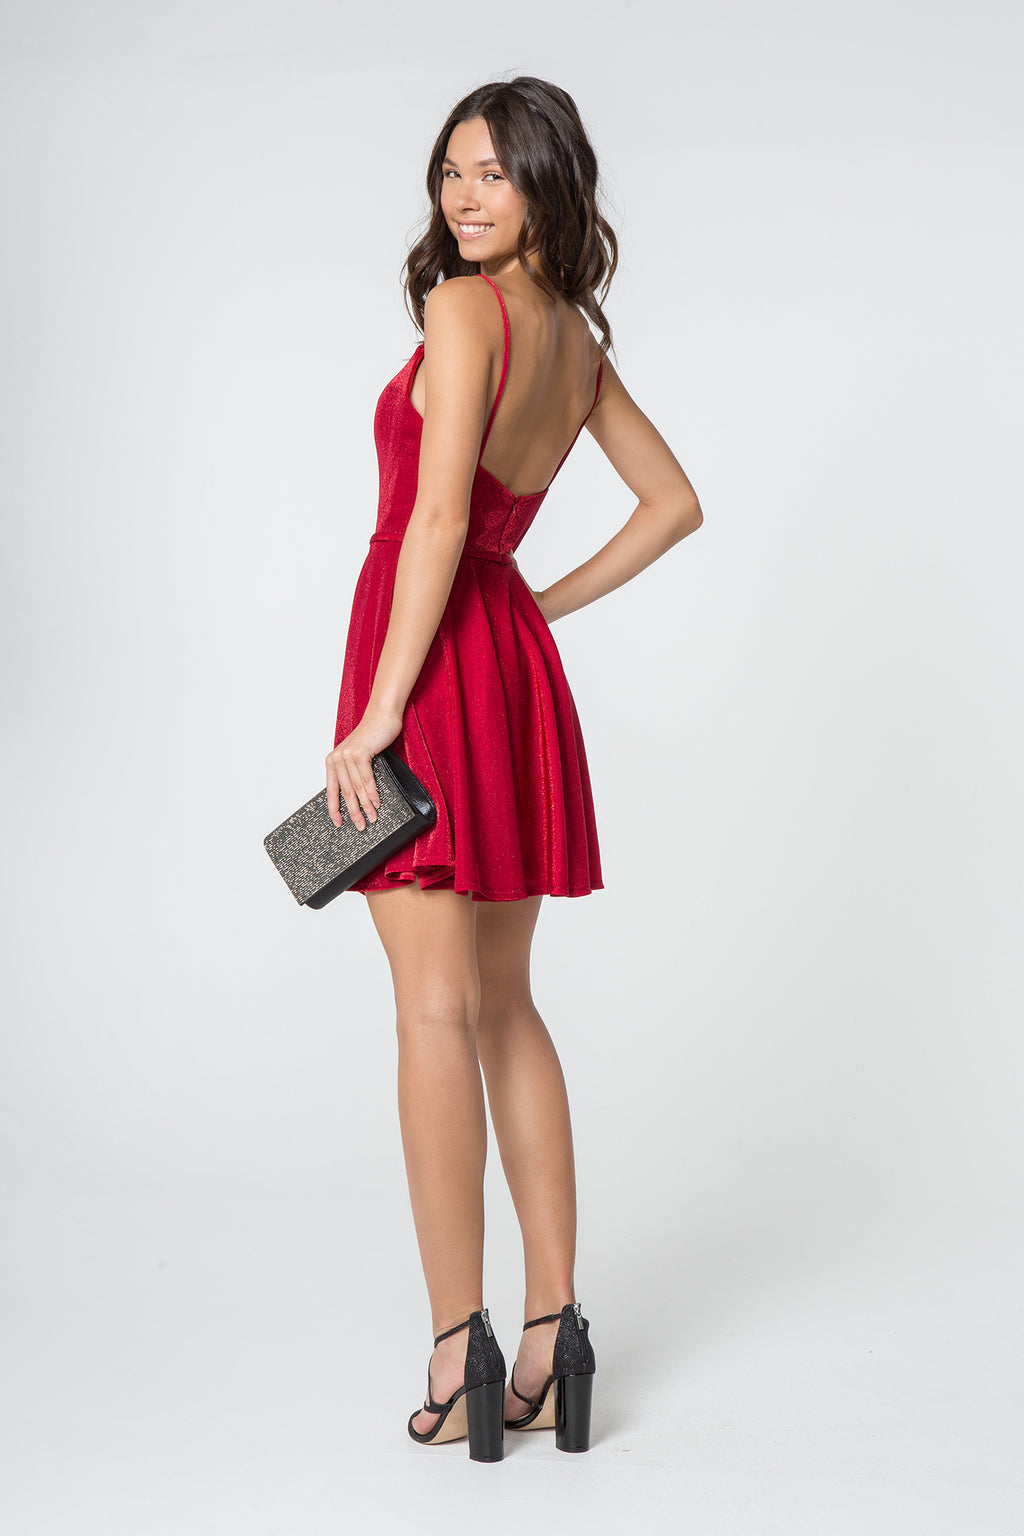 Elizabeth K GS2837 Cocktail Dress - CYC Boutique